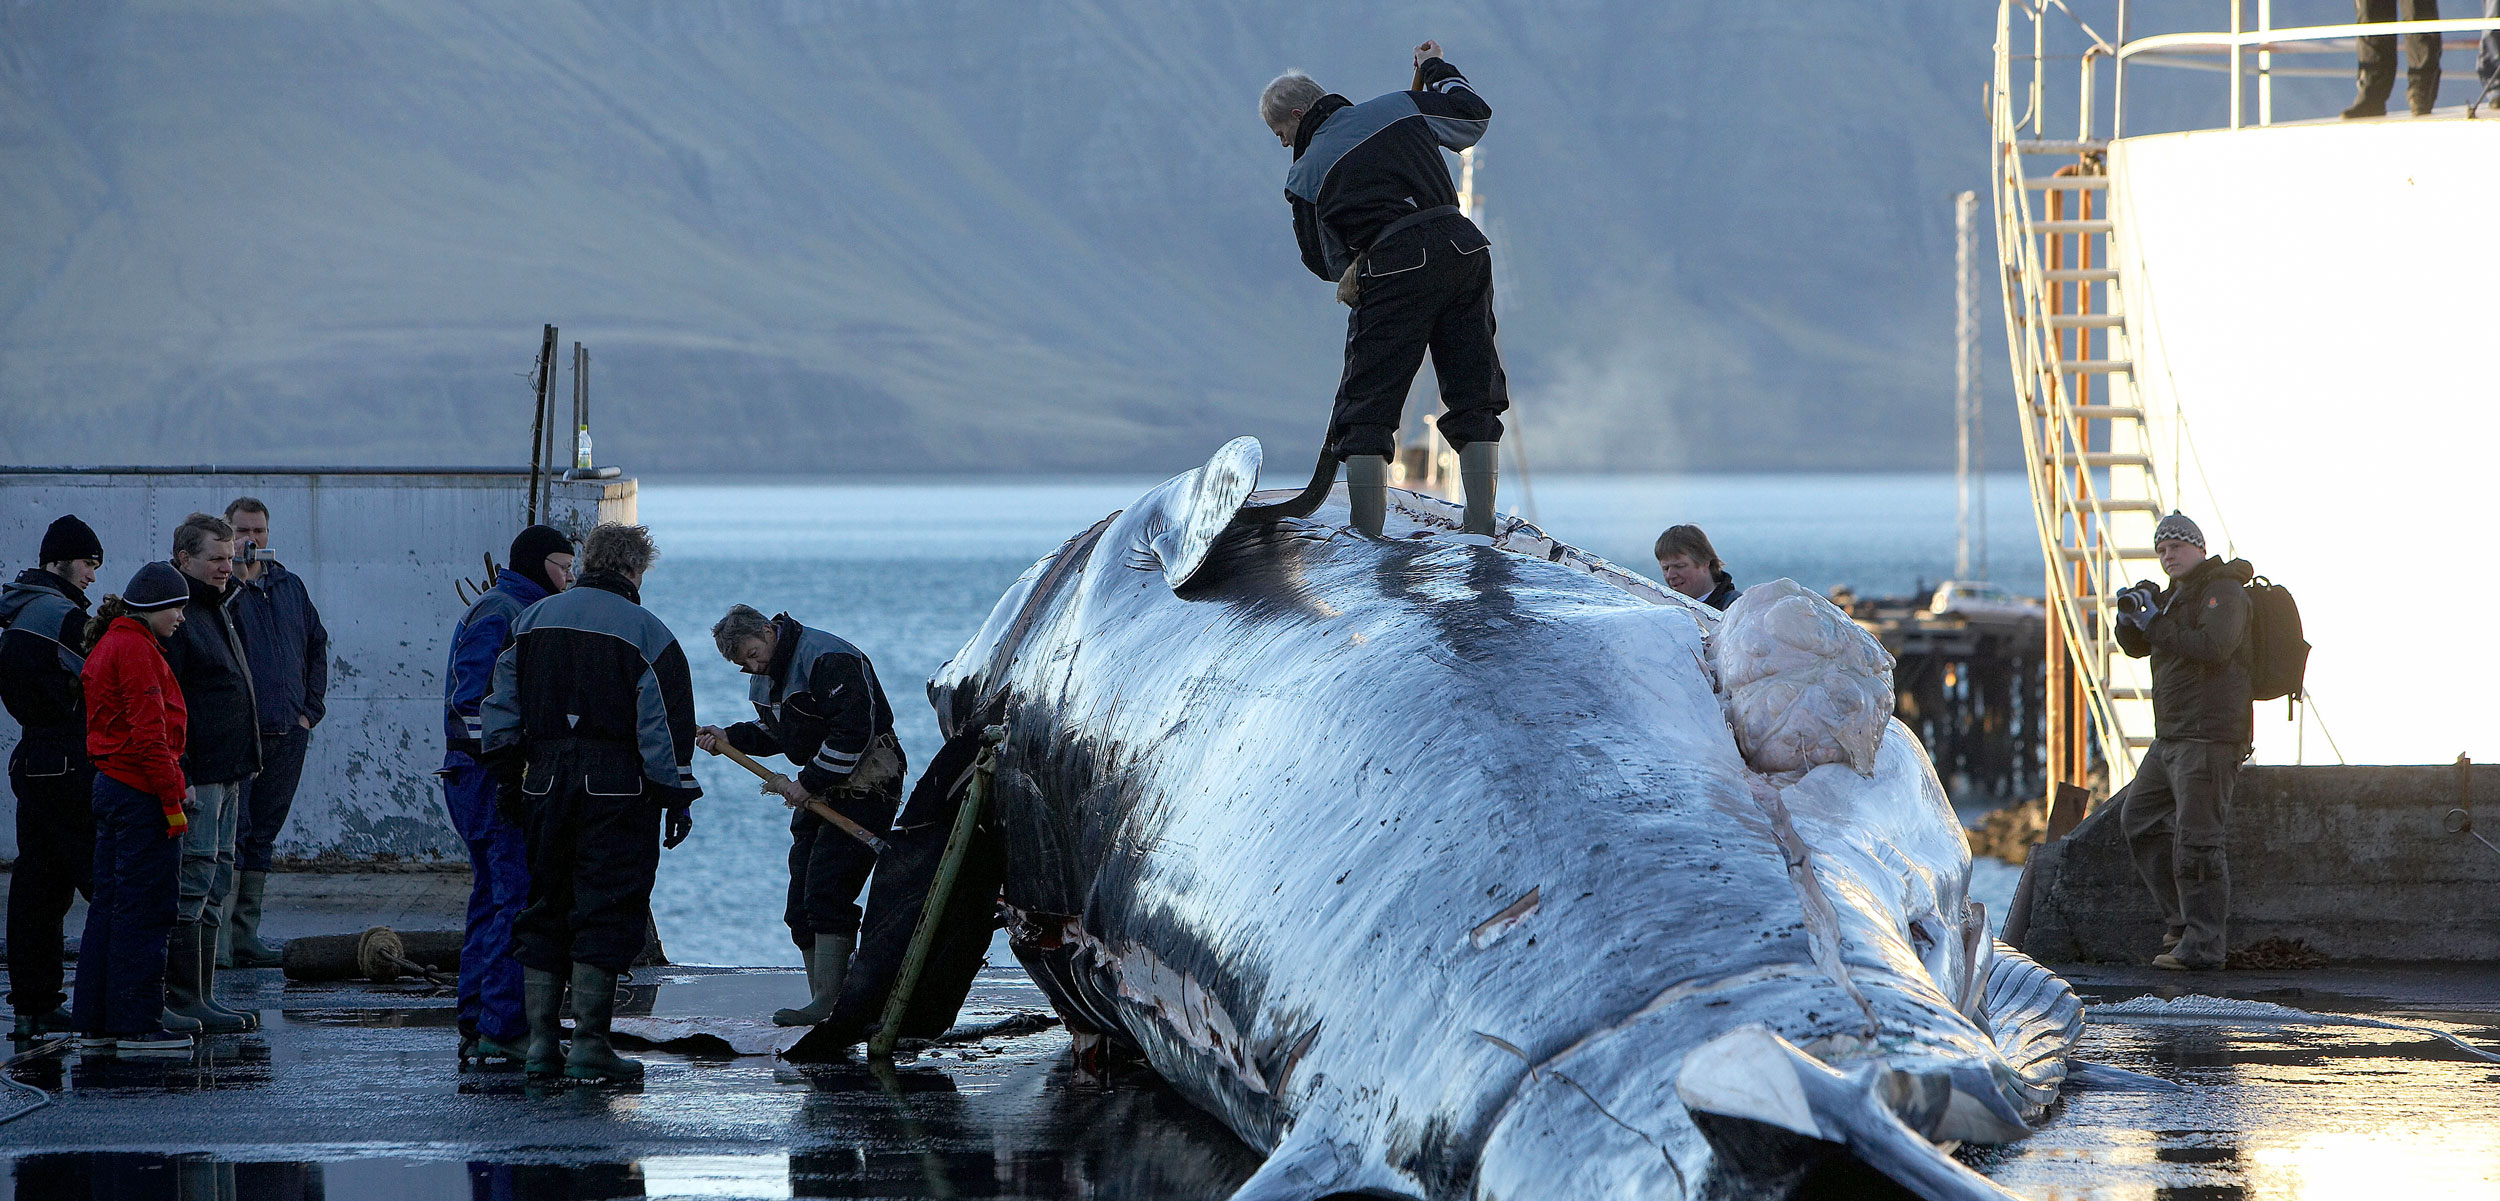 People standing ontop of a whale on a beach infront of the ocean